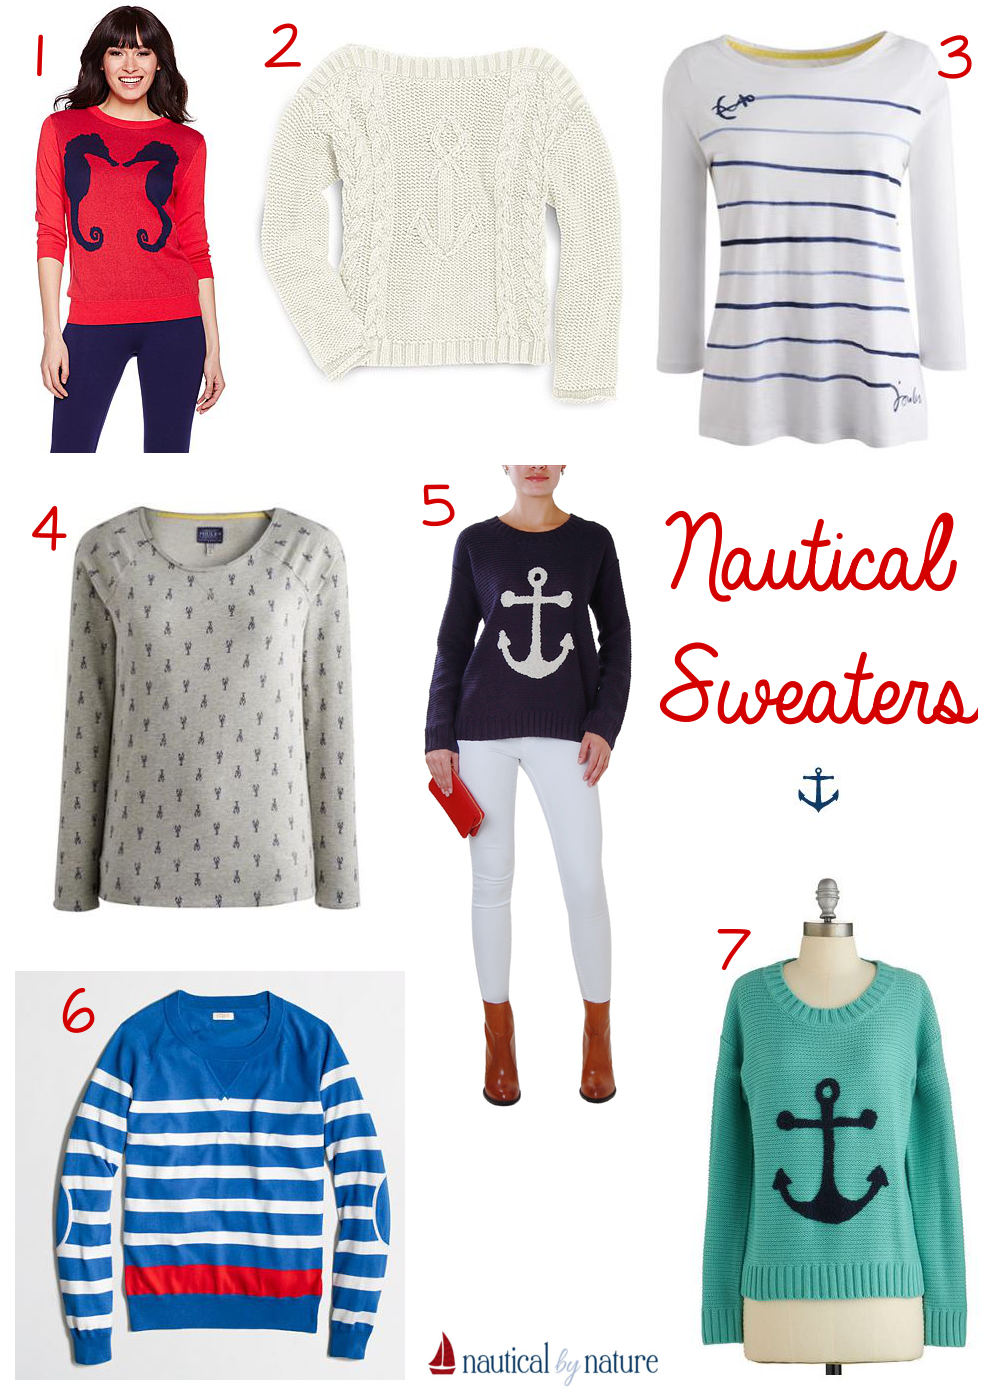 Nautical by Nature | Nautical sweaters for fall